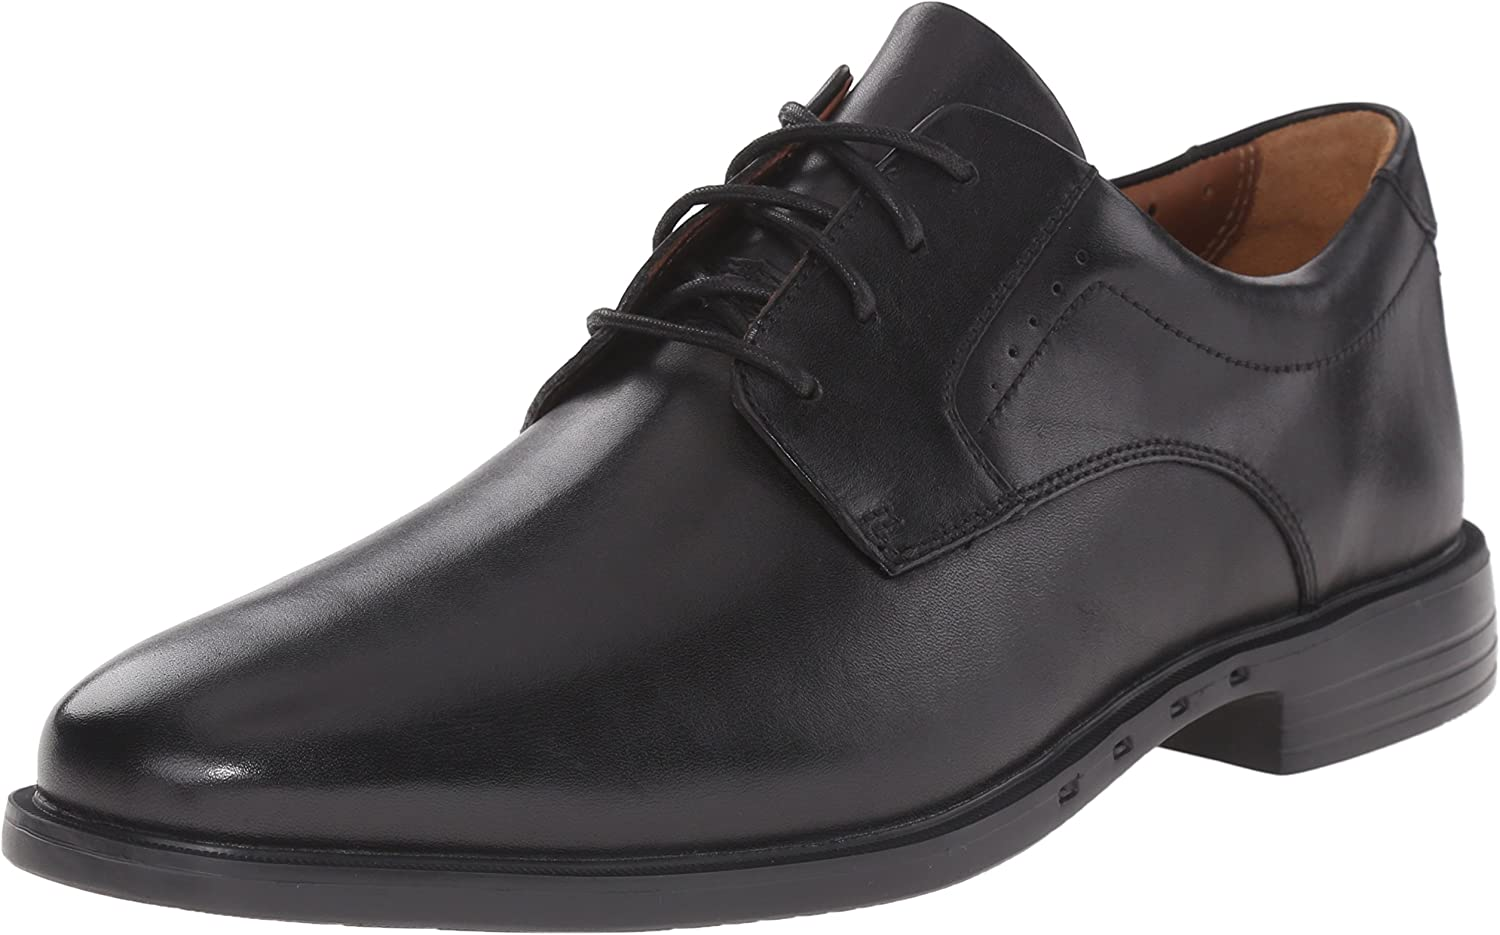 Clarks Men's Unbizley Plain Leather Lace-Up shoes